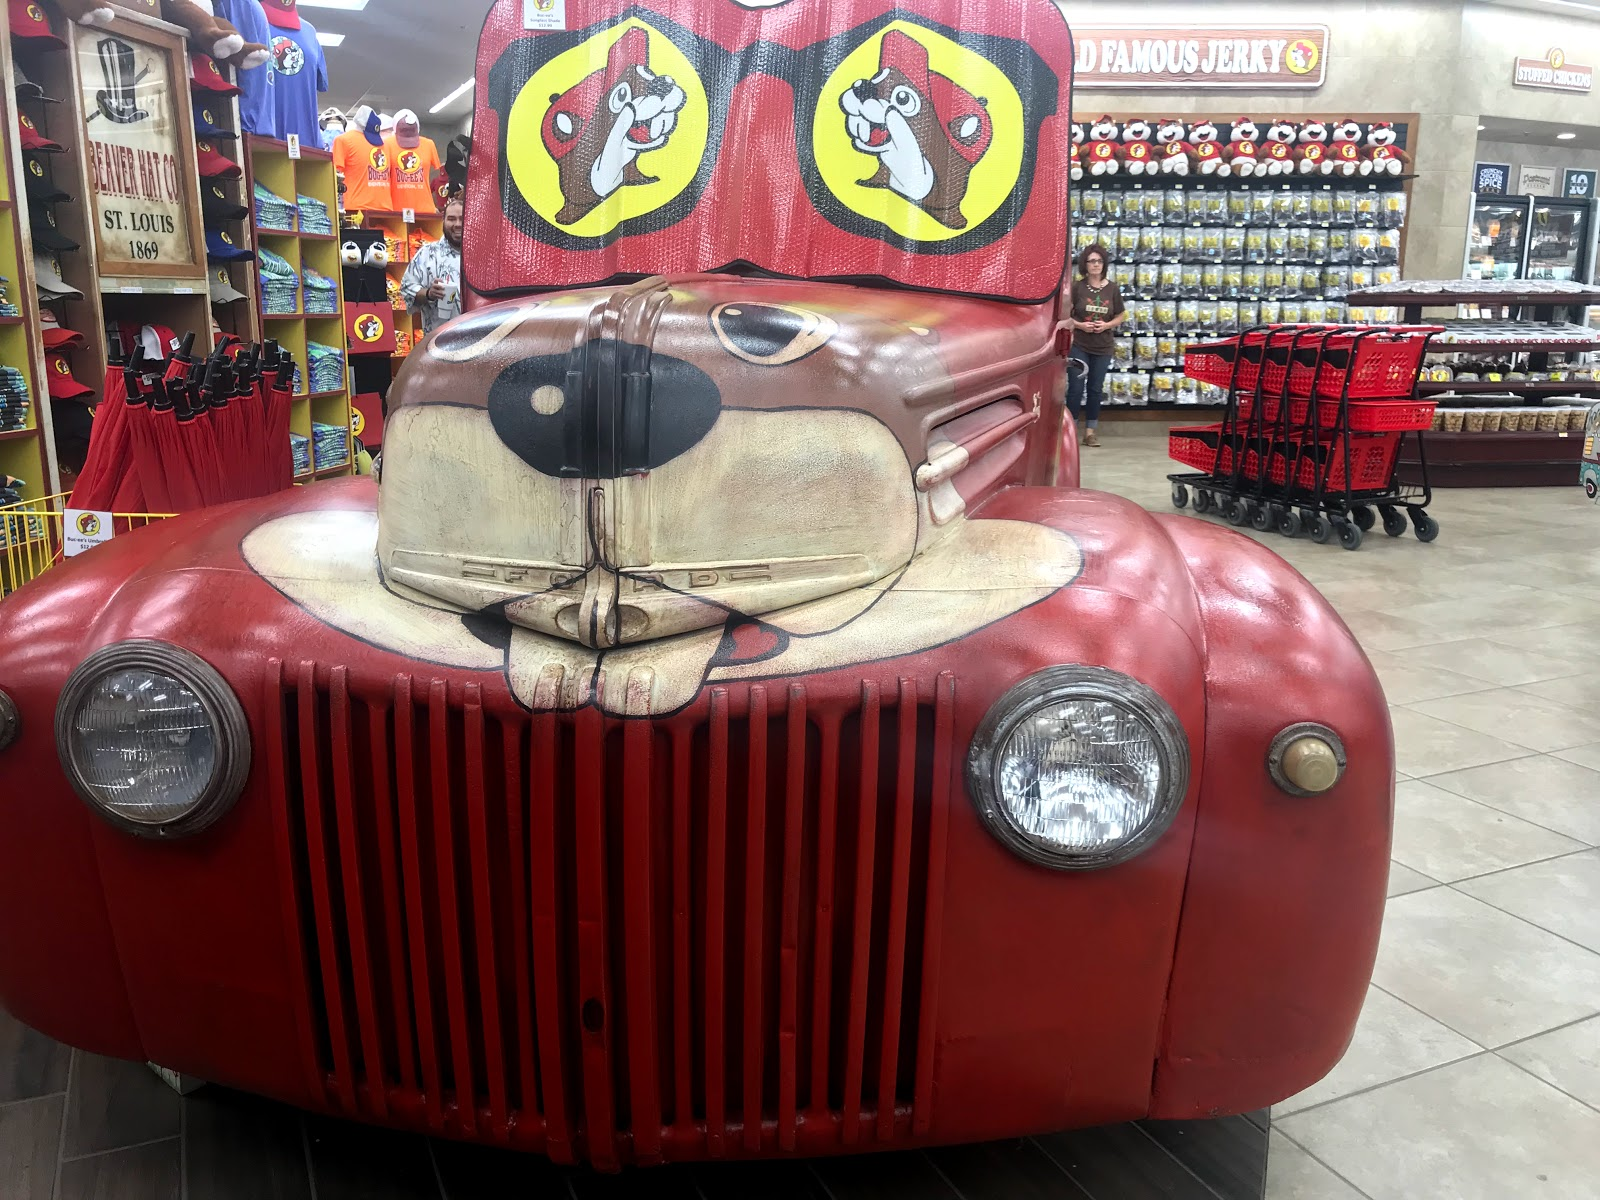 Image: A liitle half truck parked in the gas station selling stuffed beavers to the public. Seen first on Bits and Babbles blog